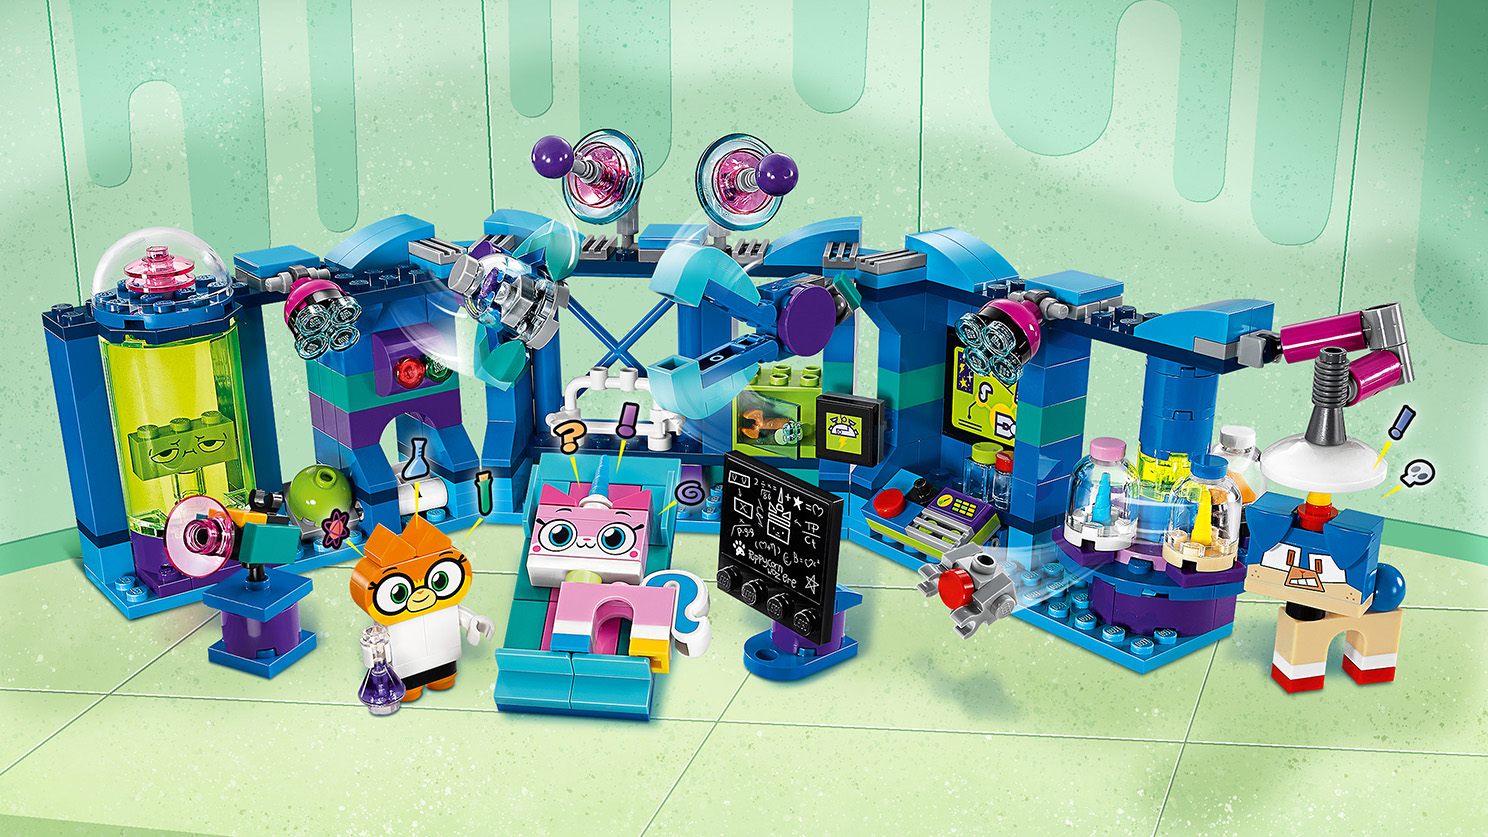 LEGO Unikitty - 41454 Dr. Fox Laboratory - Make lots of experiments with Dr. Fox to make sure there is always enough sparkle matter in Unikingdom!